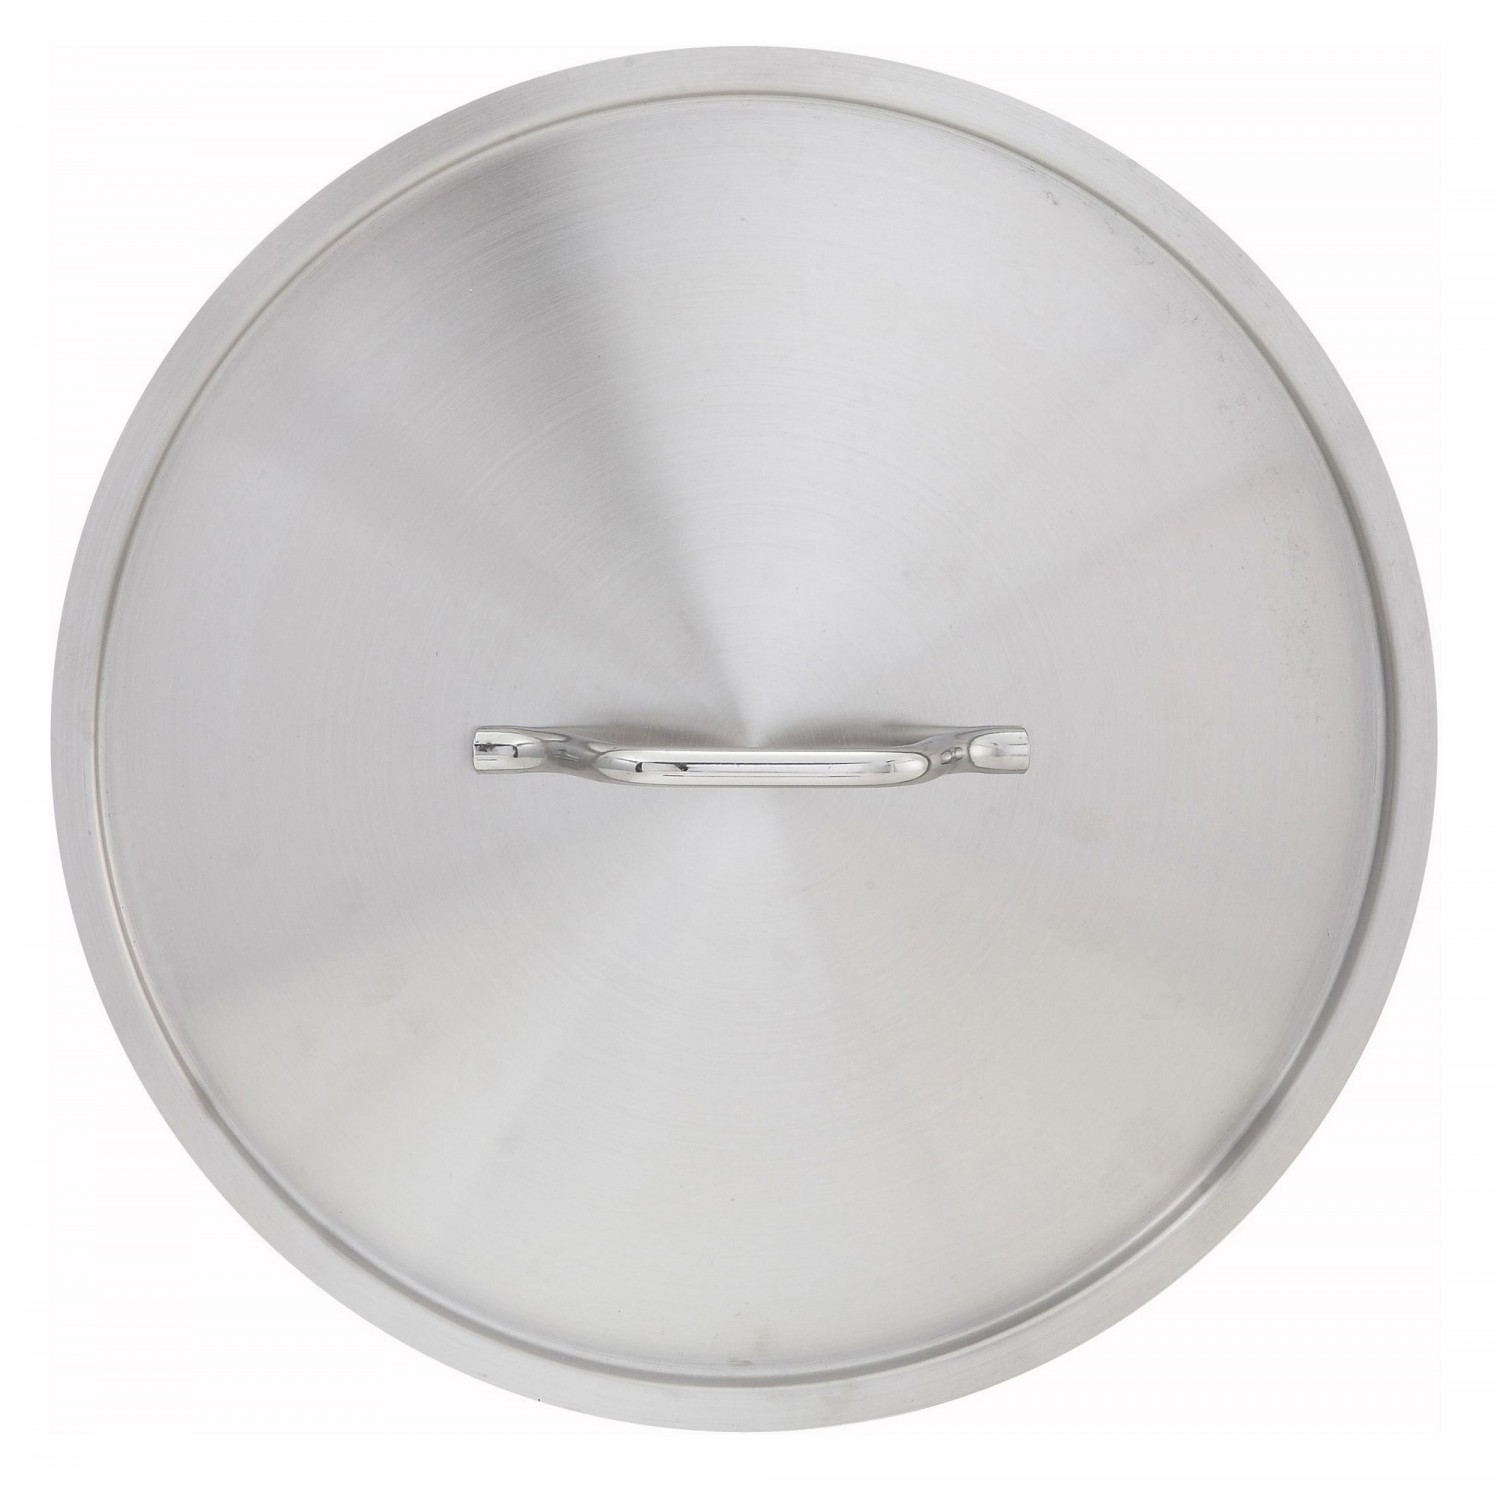 Winco SSTC-12 Stainless Steel Cover for SST-12/16, SSFP-11/11NS